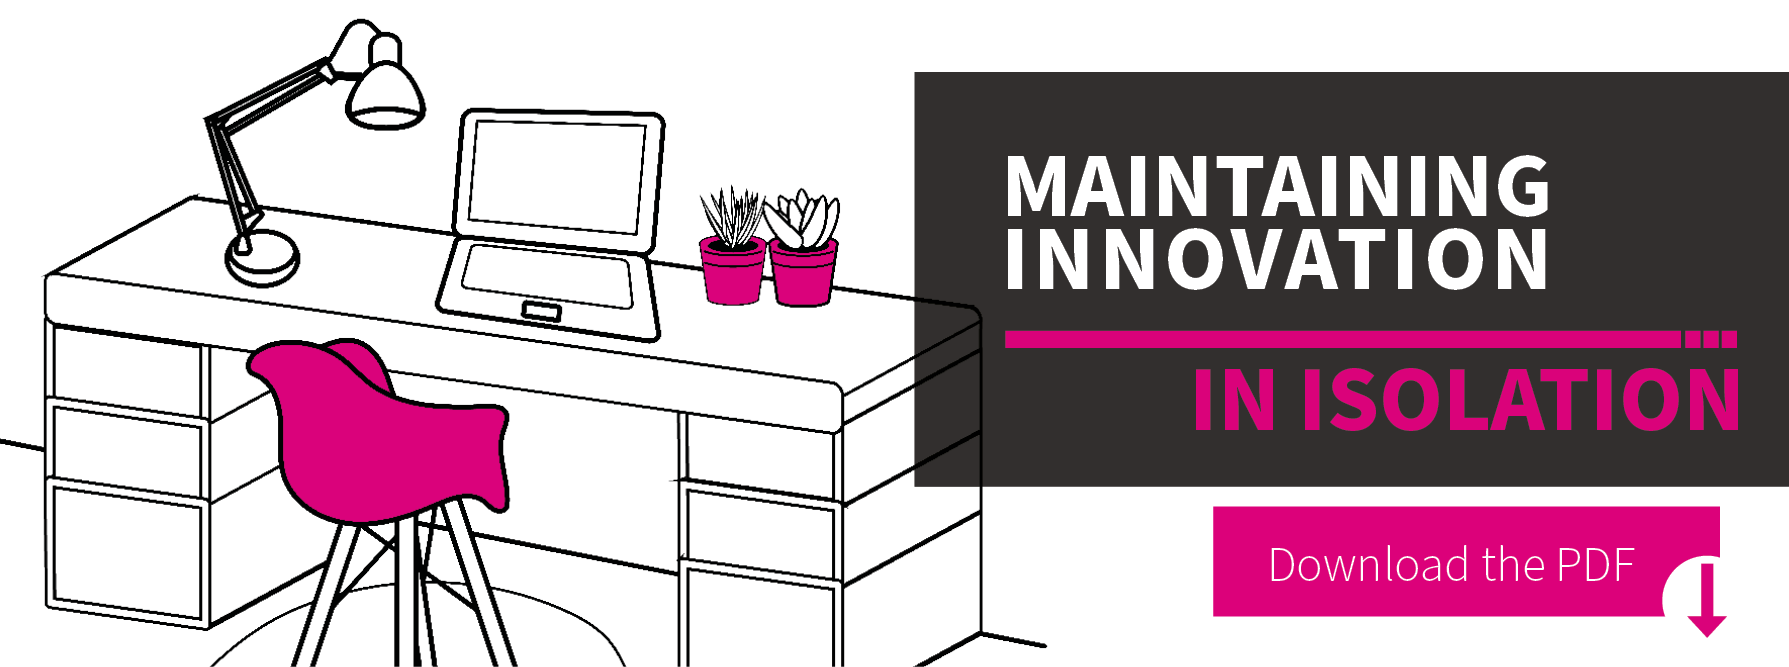 Handle Insight PDF - Download how to maintain innovation in isolation